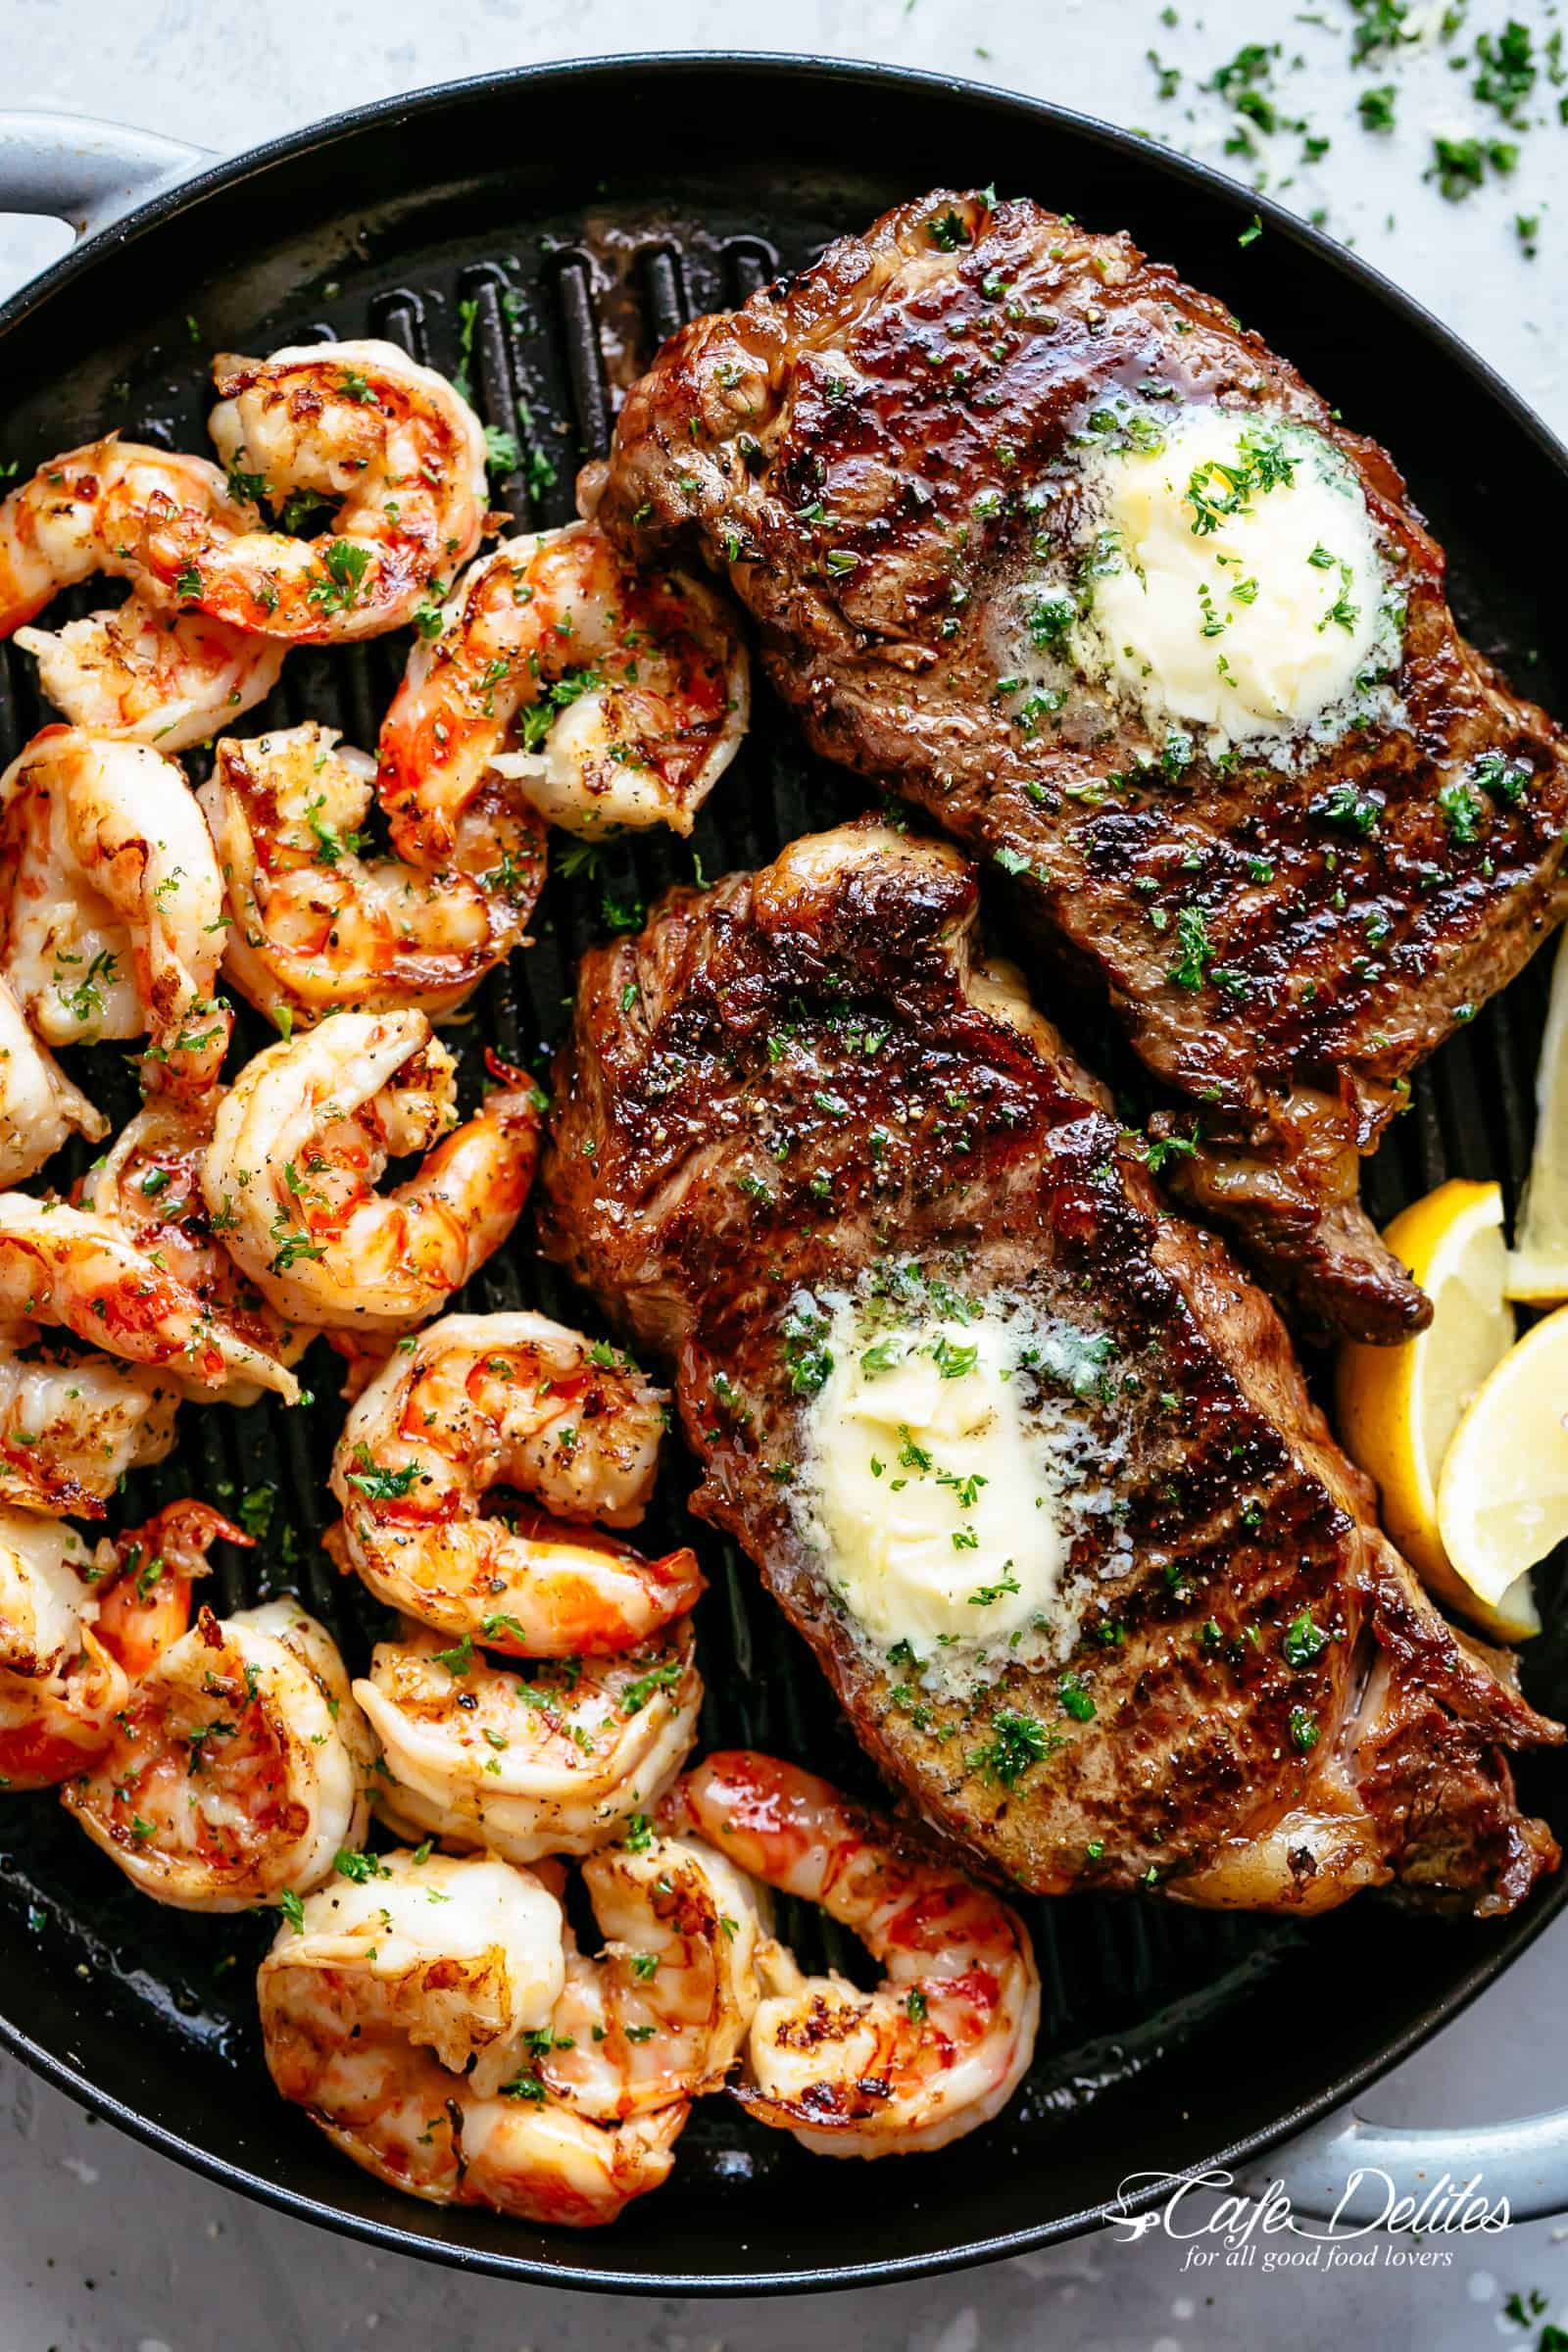 Garlic Butter Grilled Steak Shrimp Cafe Delites